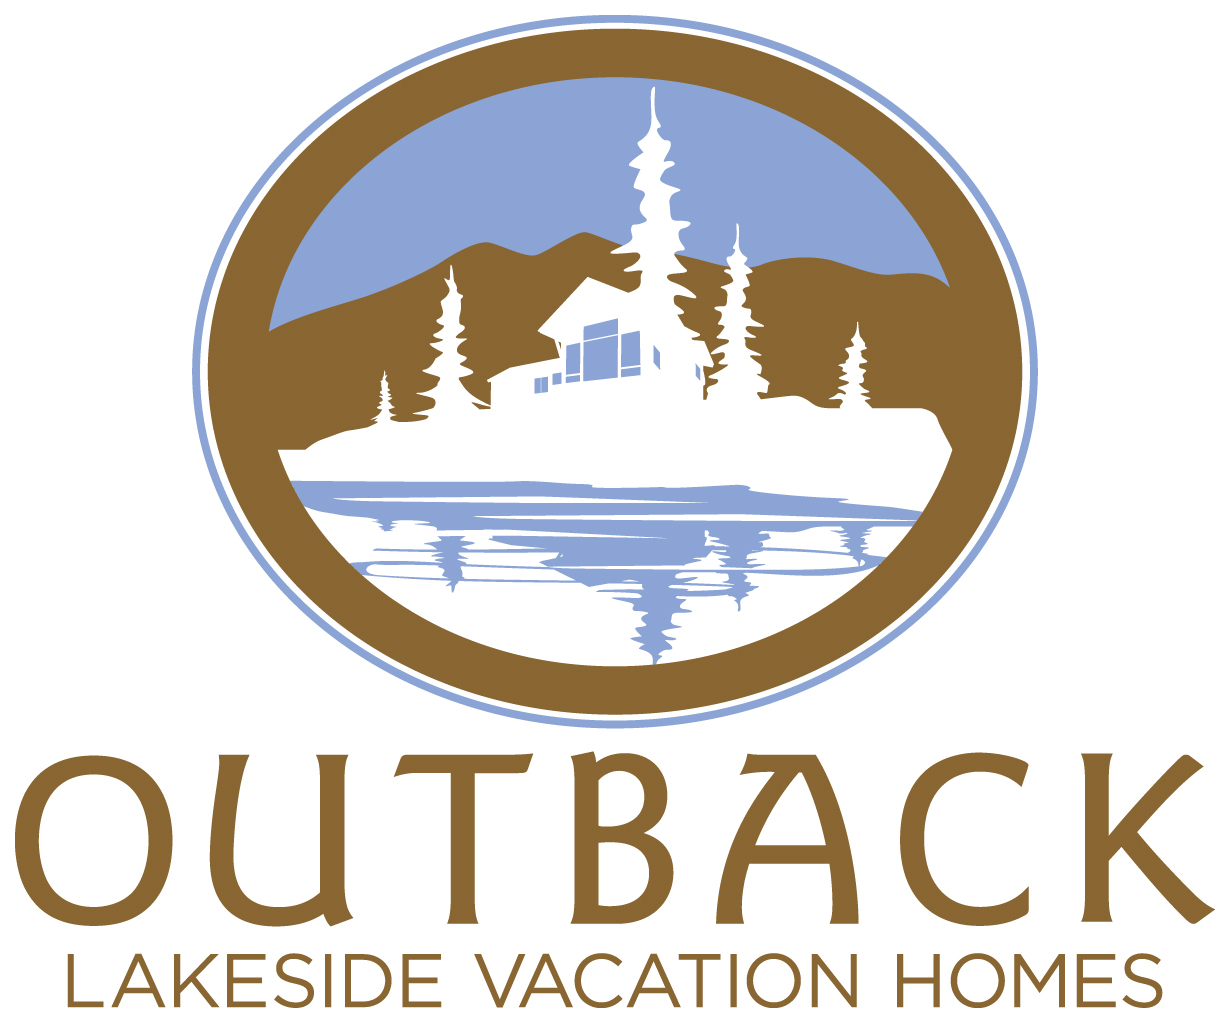 Outback Lakeside Vacation Homes logo